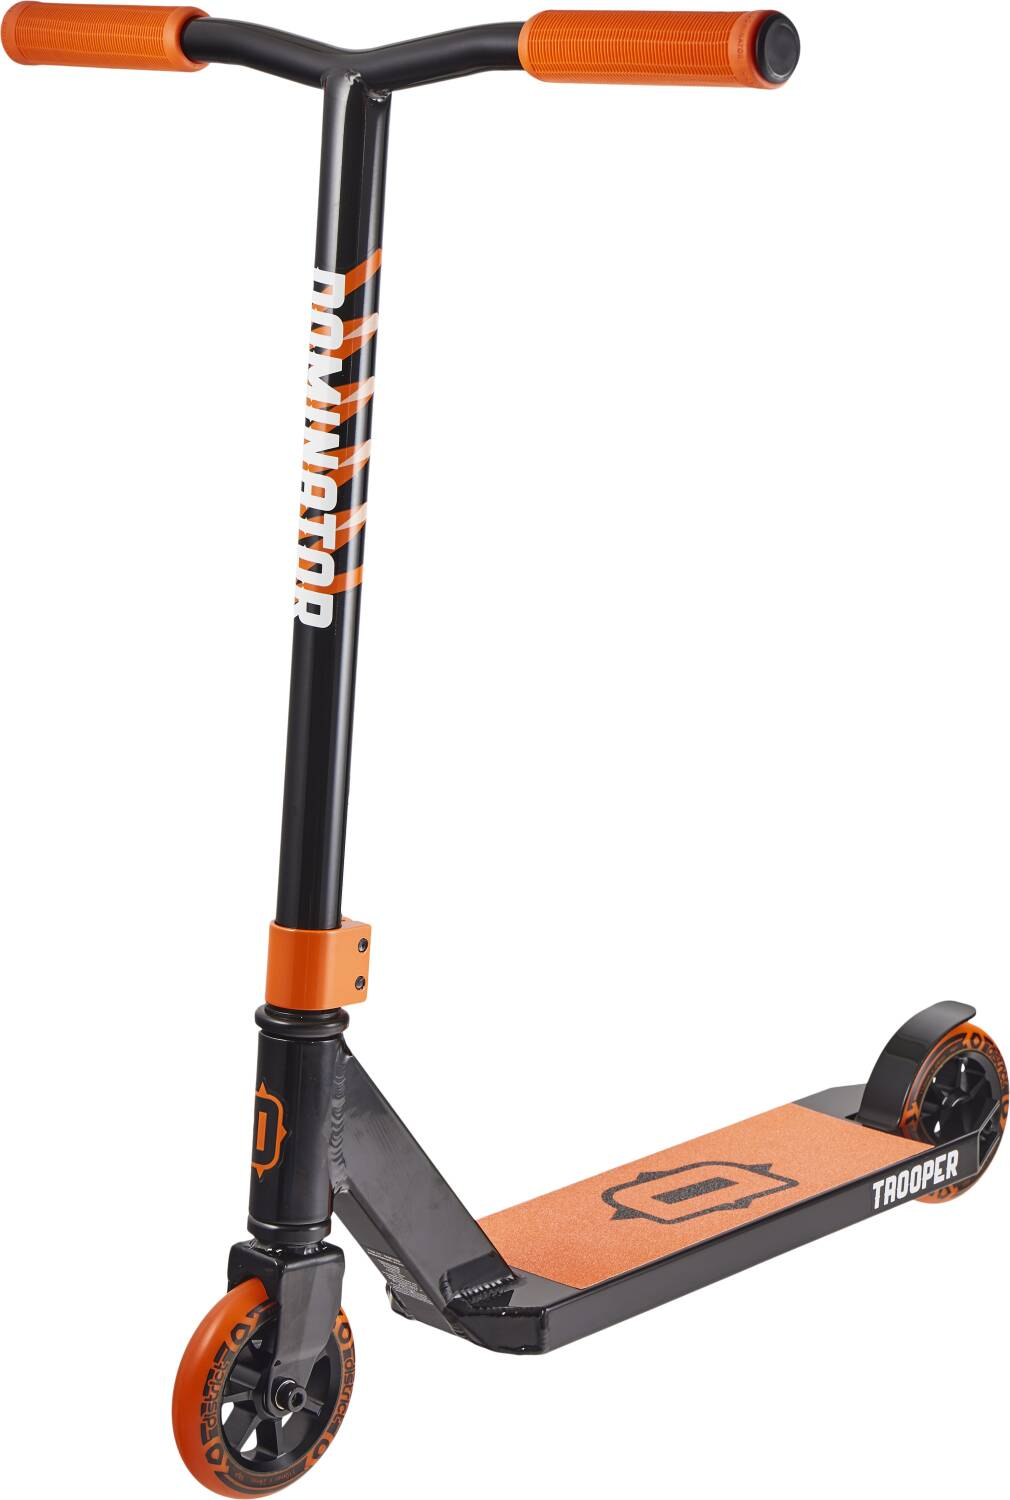 Dominator Trooper Scooter - Black / Orange